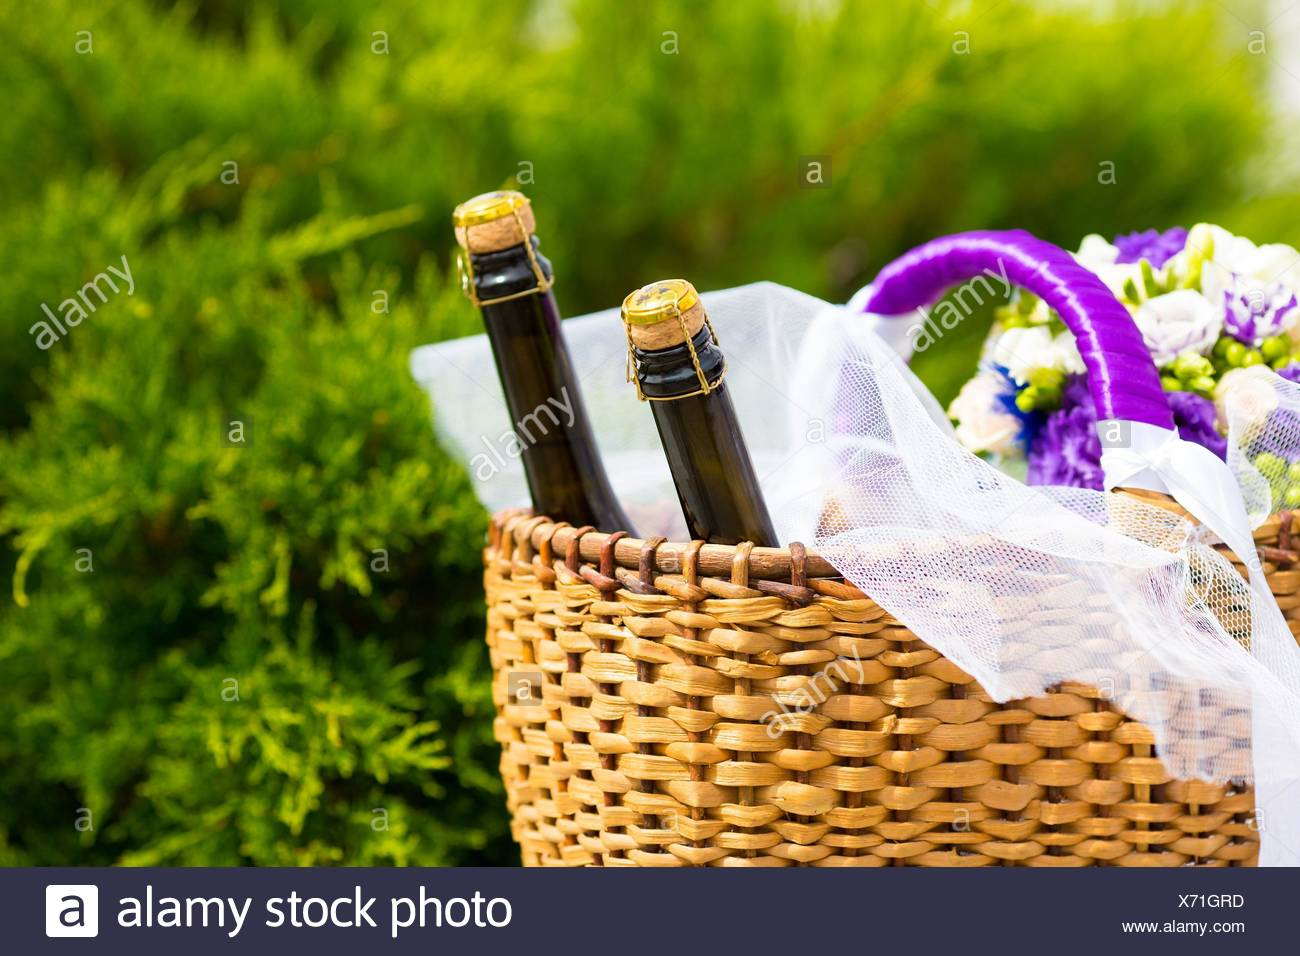 Wicker basket with two bottles champaign and flowers. - Stock Image